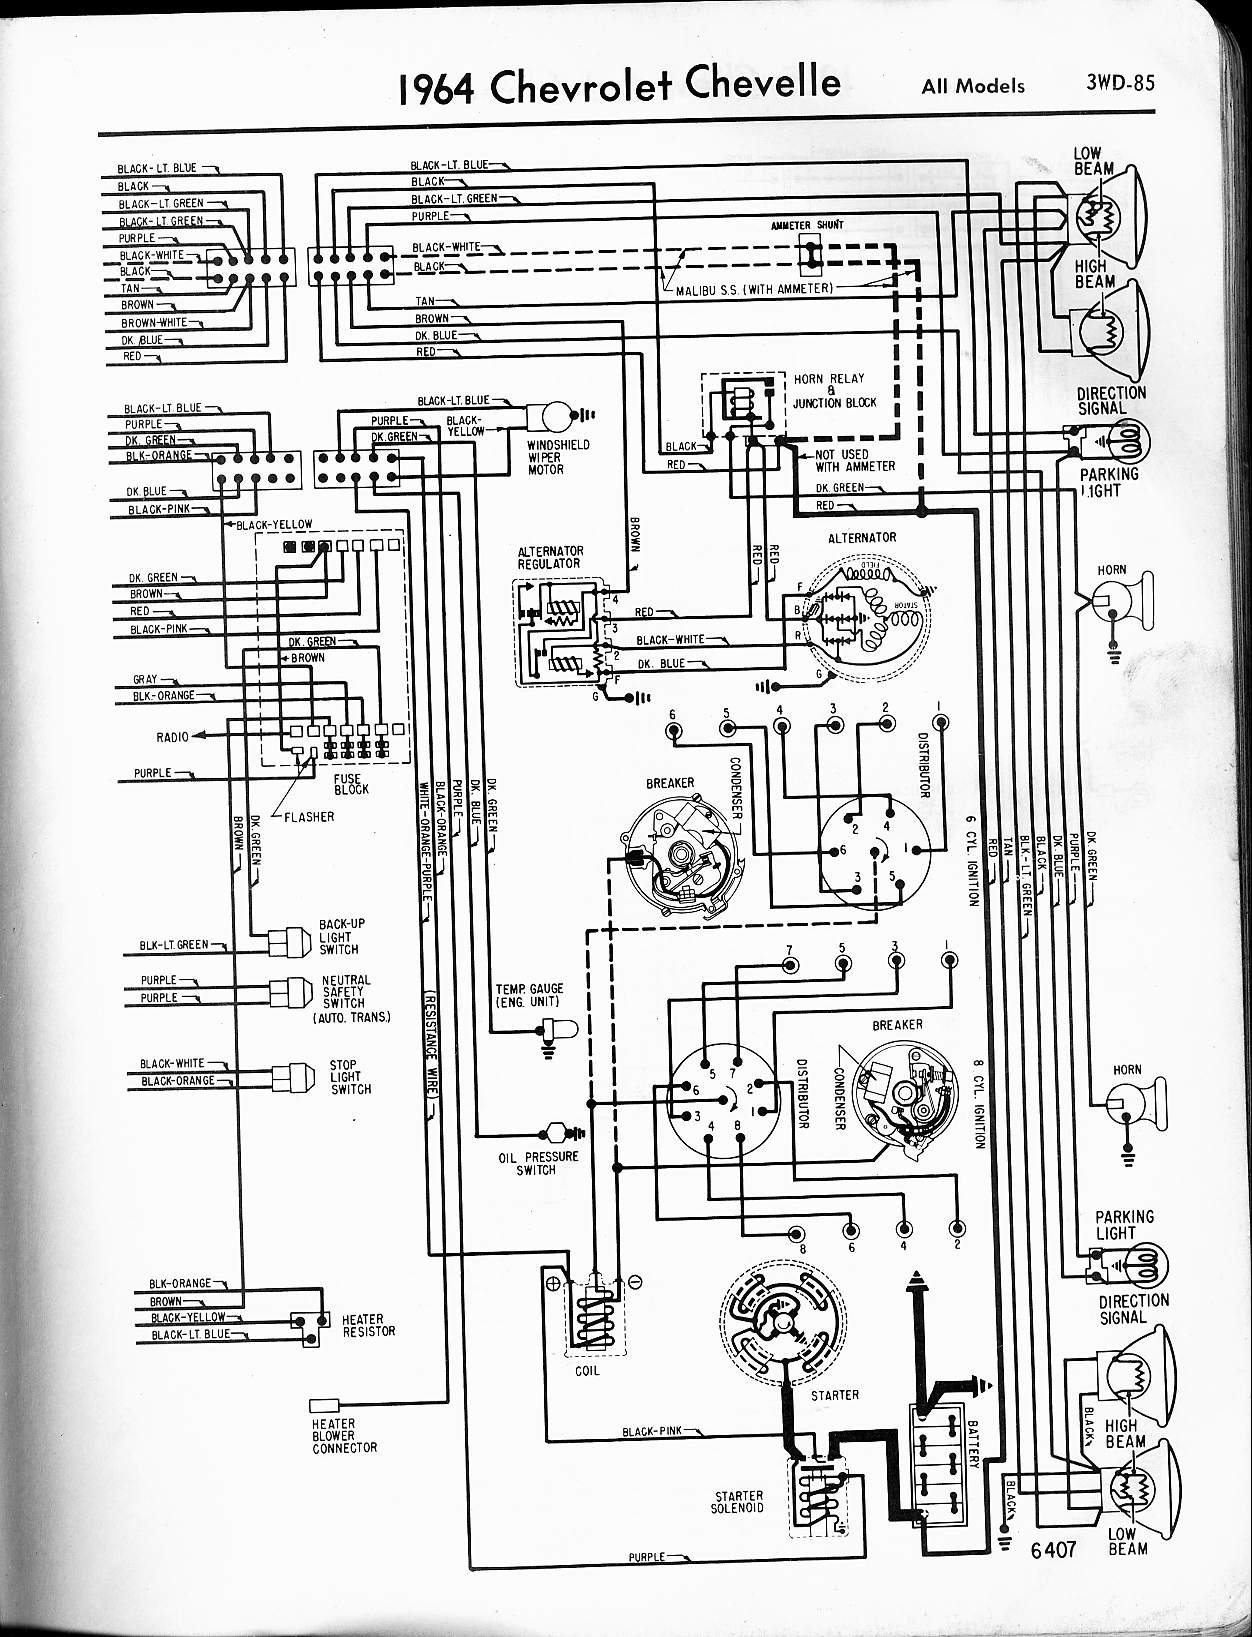 MWireChev64_3WD 085 1969 chevelle wiring diagram pdf 1969 thunderbird dash wiring 1967 olds 442 wiring diagram at soozxer.org